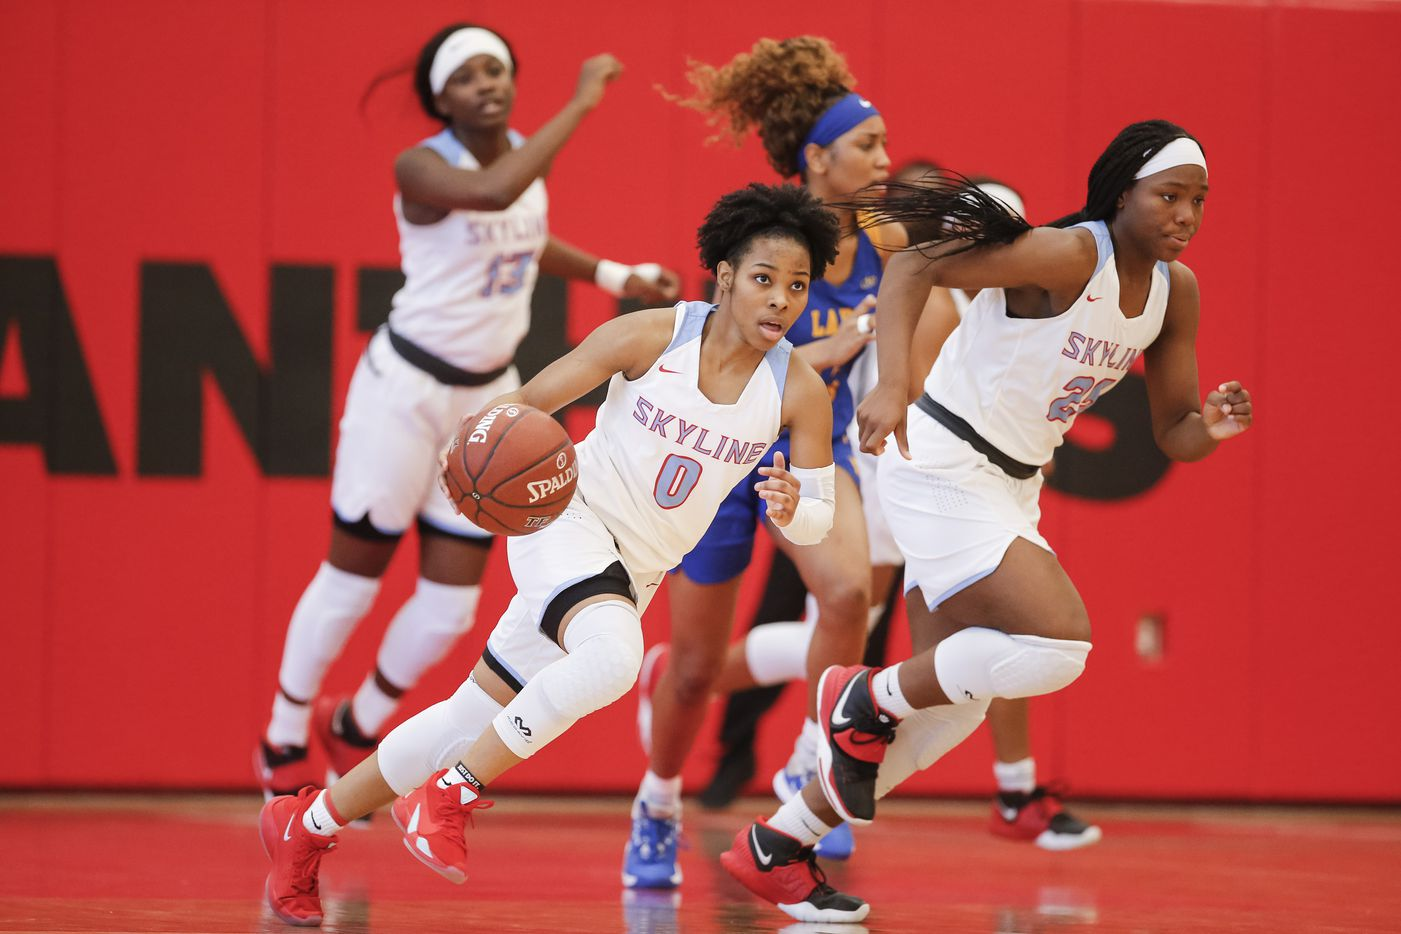 Skyline senior Zyniah Thomas (0) charges up the court during a girls basketball first-round playoff game against Lakeview Centennial at Hillcrest High School in Dallas, Saturday, February 13, 2021. Skyline won 49-42. (Brandon Wade/Special Contributor)